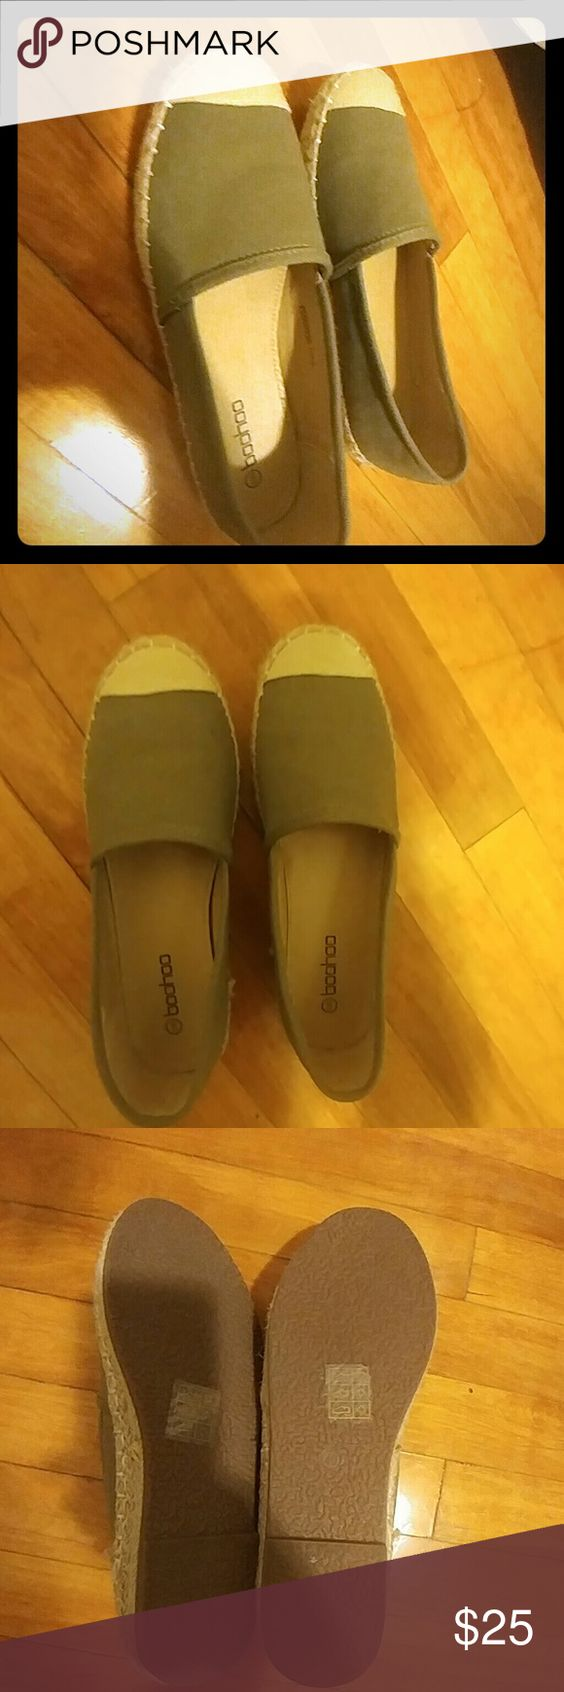 Olive Green Espadrilles Olive Green / Khaki Espadrilles. Worn Once. Great condition Shoes Espadrilles